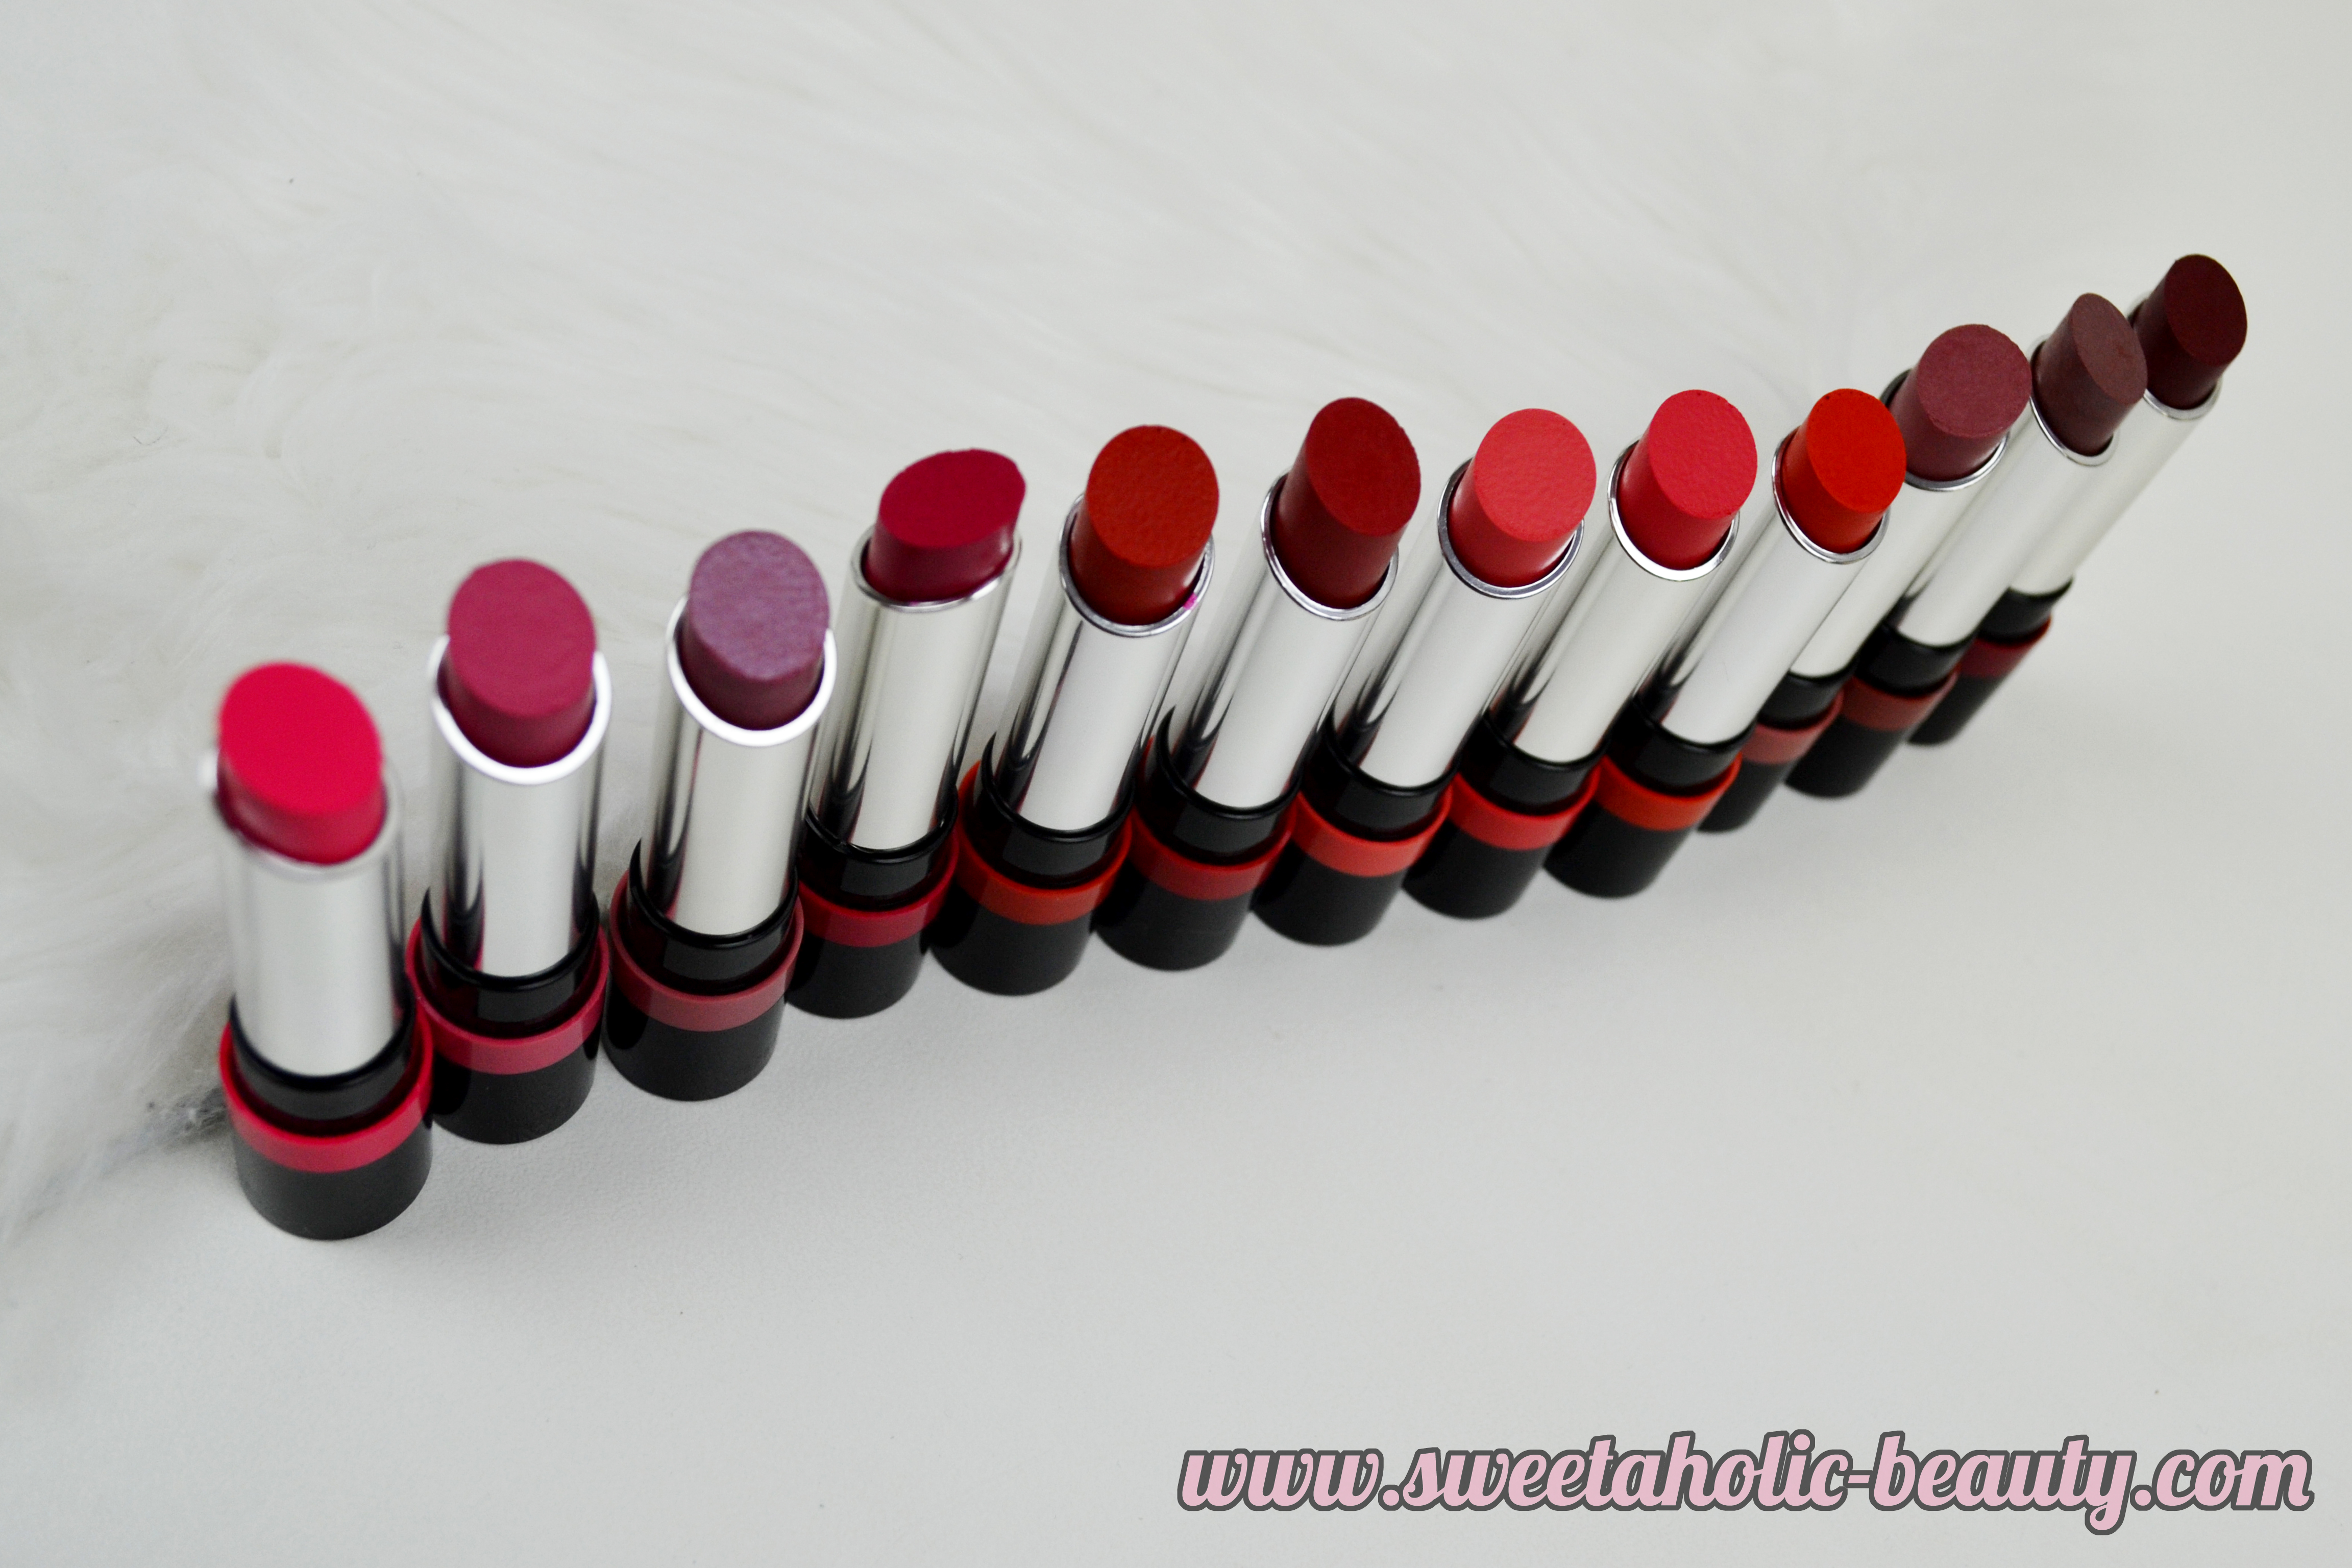 Rimmel London The Only One Lipstick Collection Review & Swatches - Sweetaholic Beauty